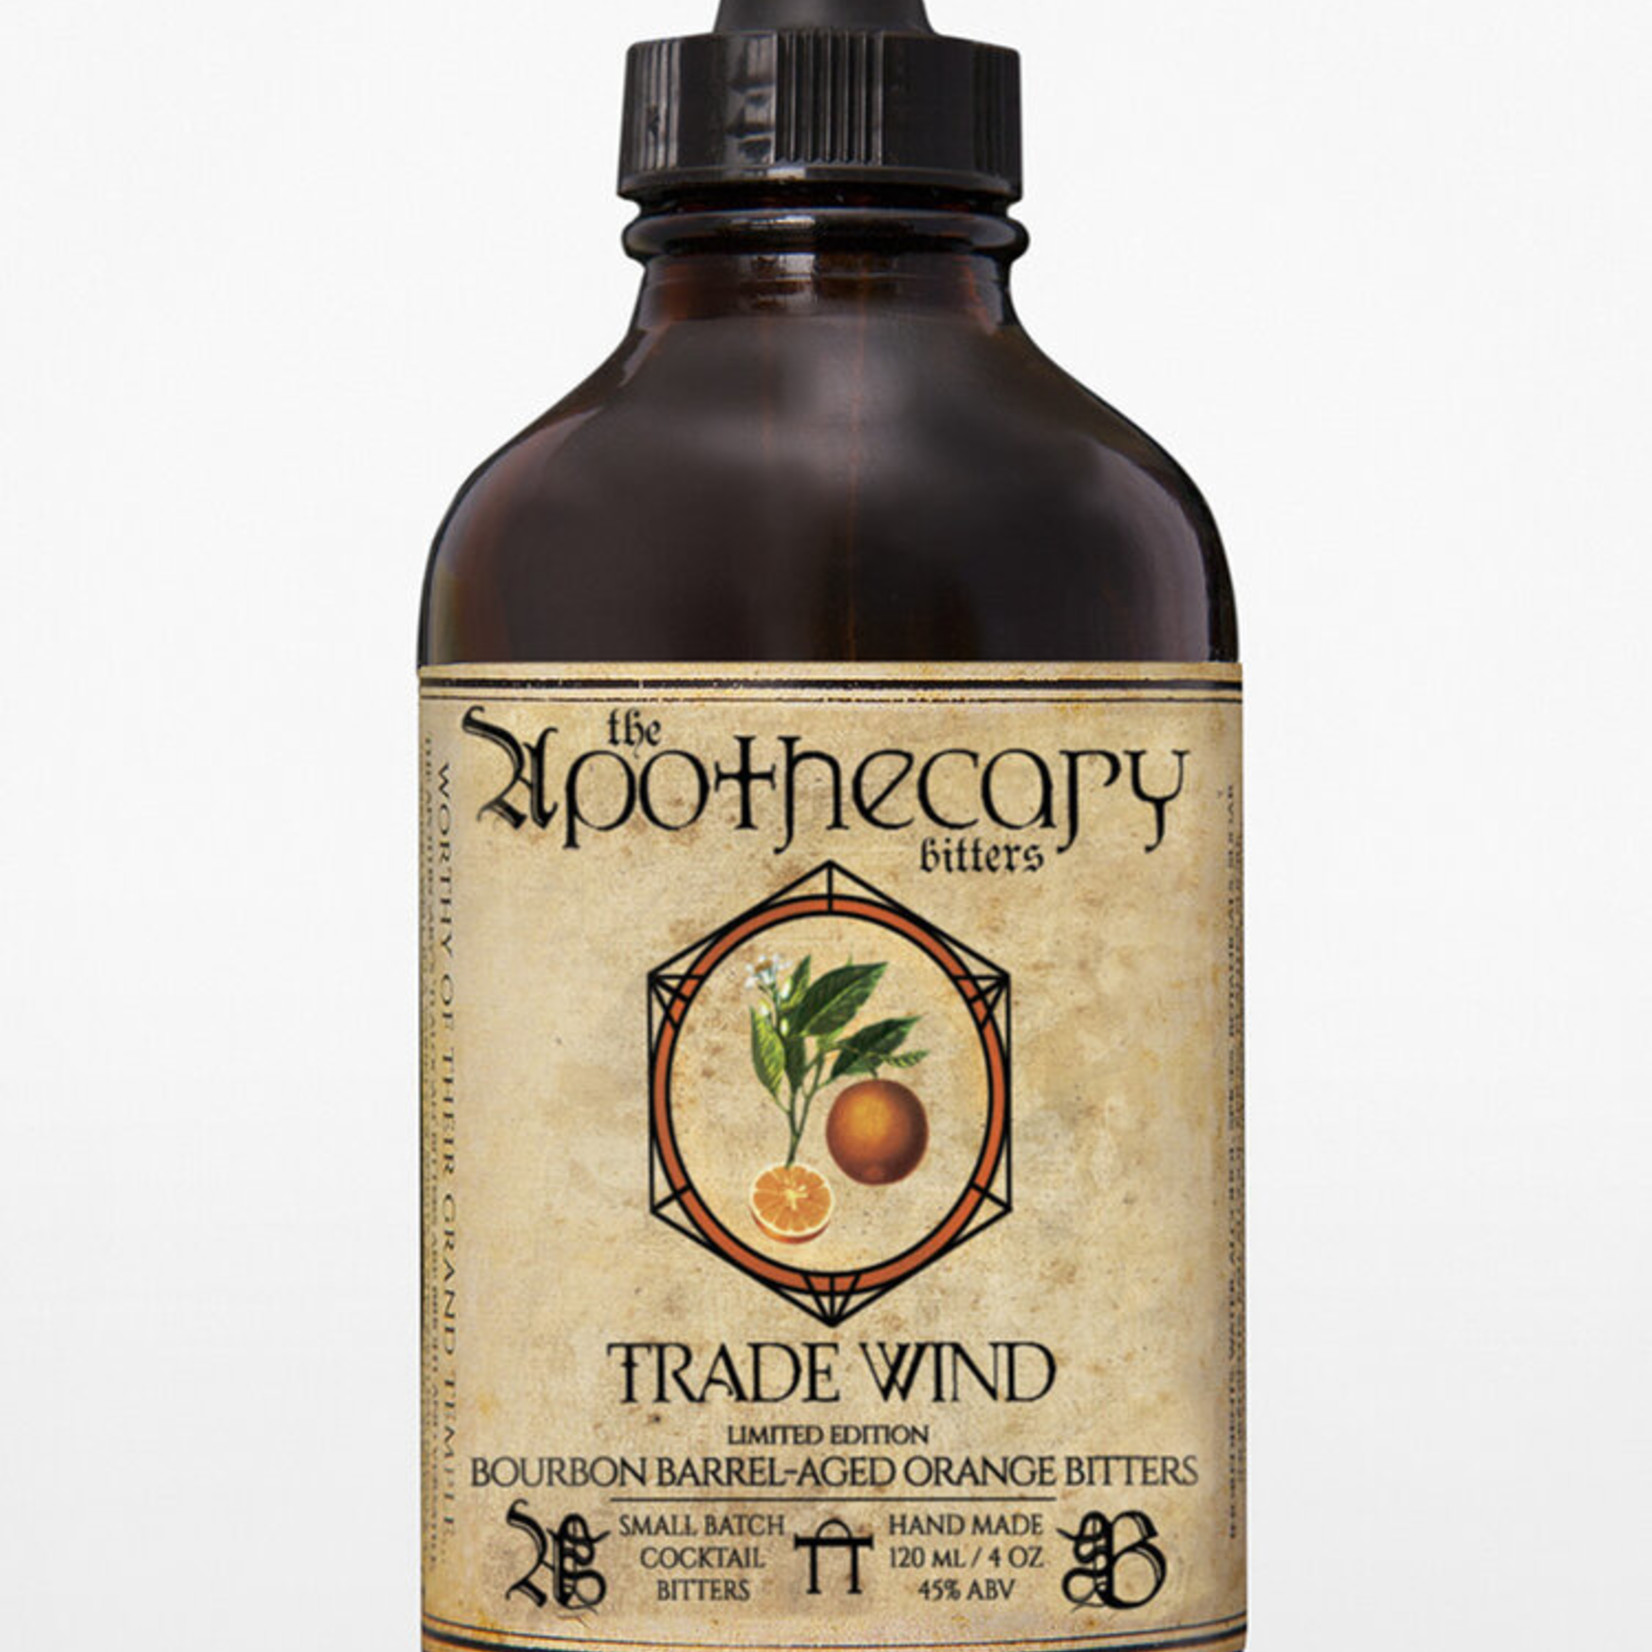 Apothecary Apothecary Bitters Trade Wind Barrel Aged Orange